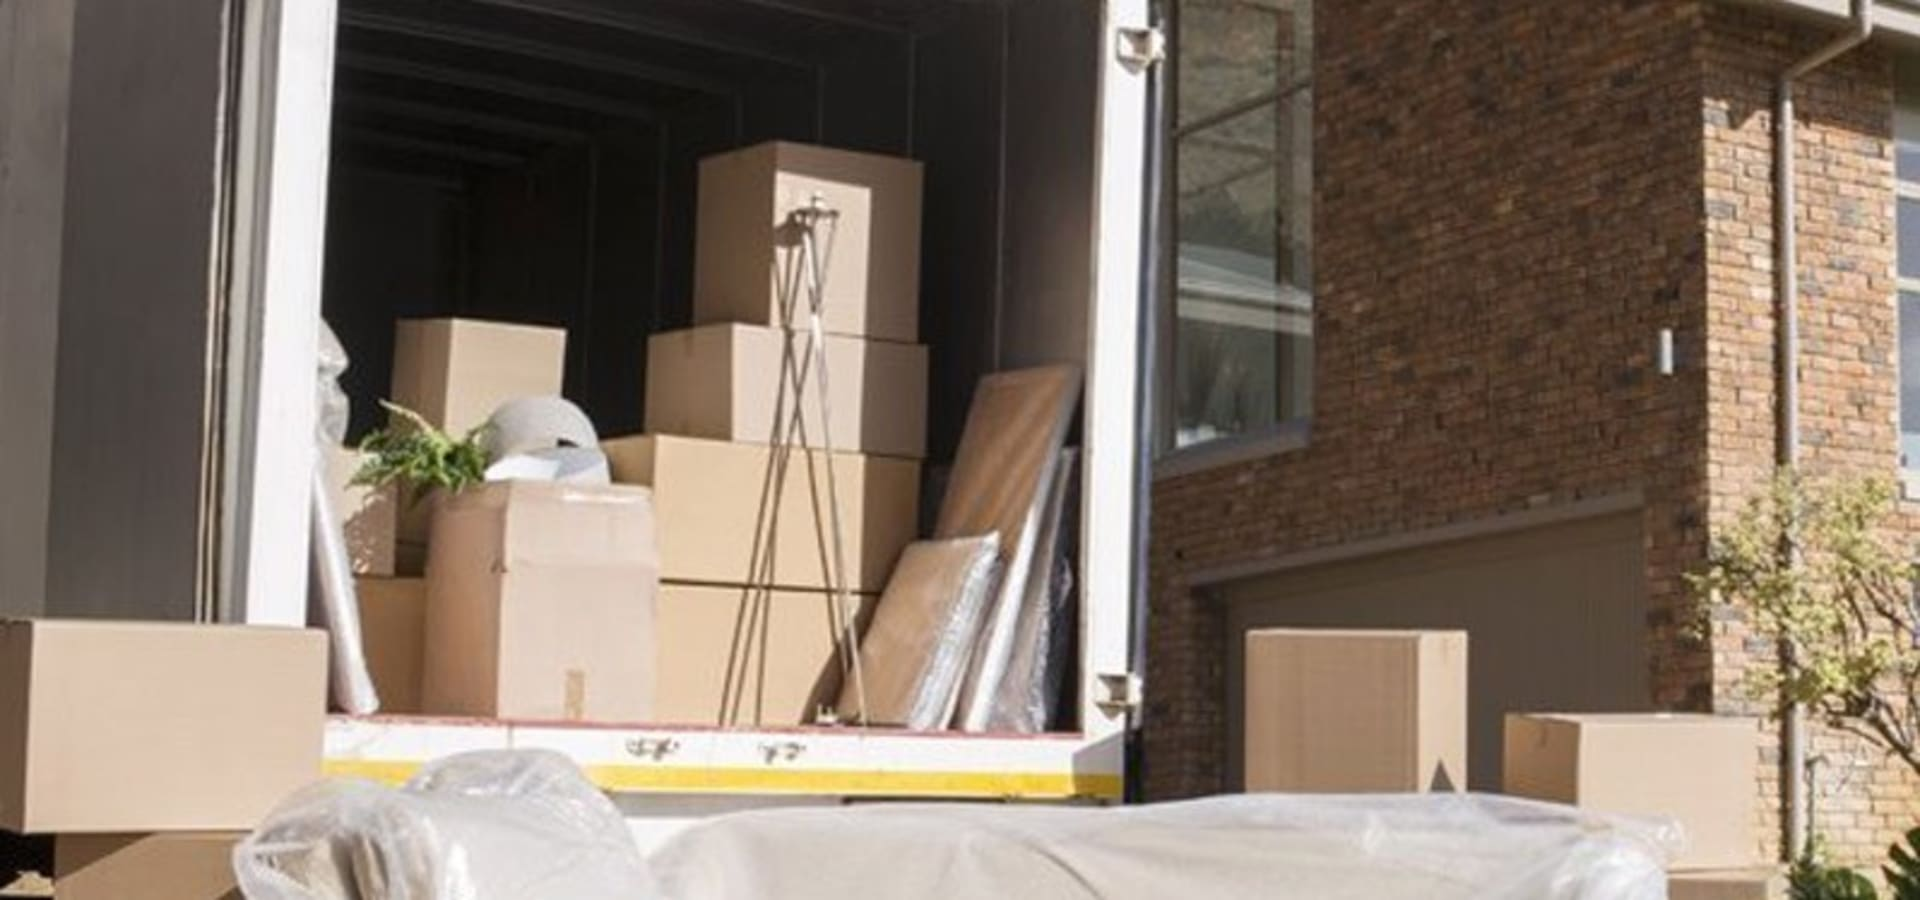 How You Can Find a Good Removal Company